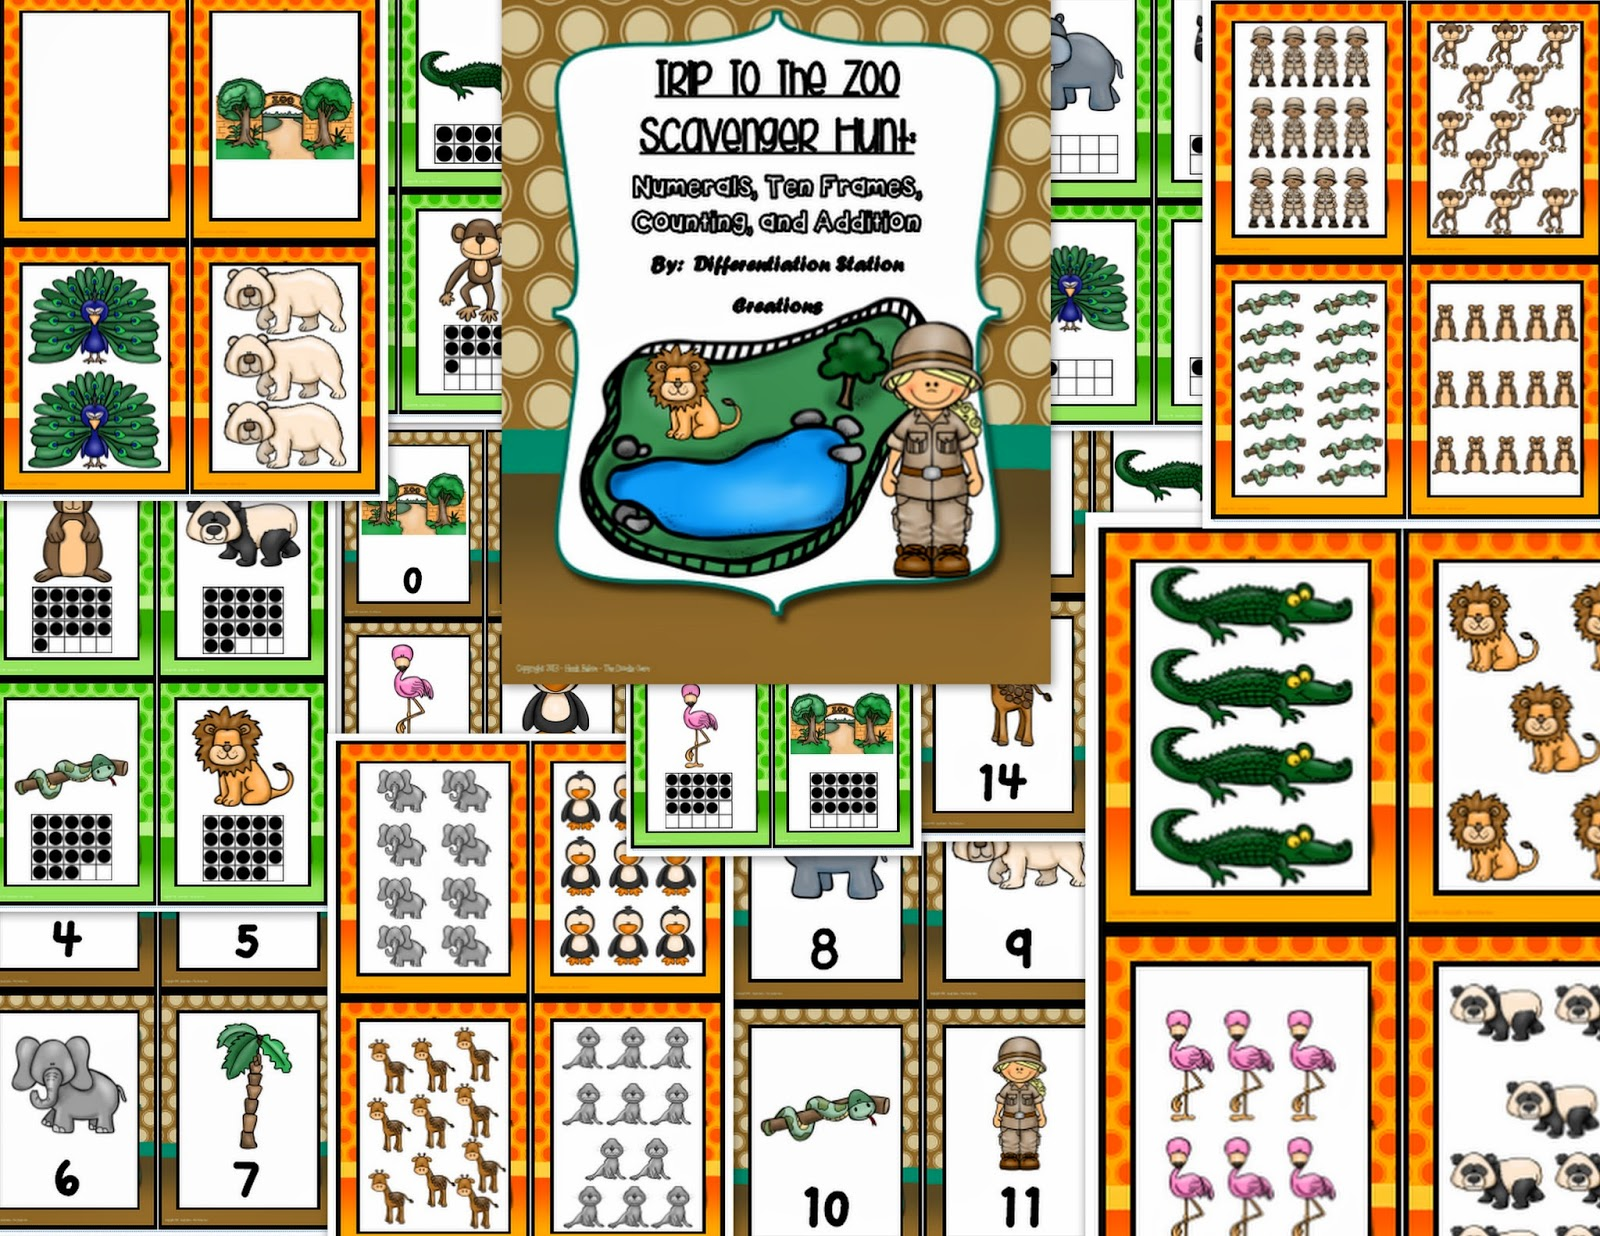 http://www.teacherspayteachers.com/Product/Trip-to-the-Zoo-Math-Scavenger-Hunt-Numerals-Ten-Frames-Counting-Cardinality-1155149